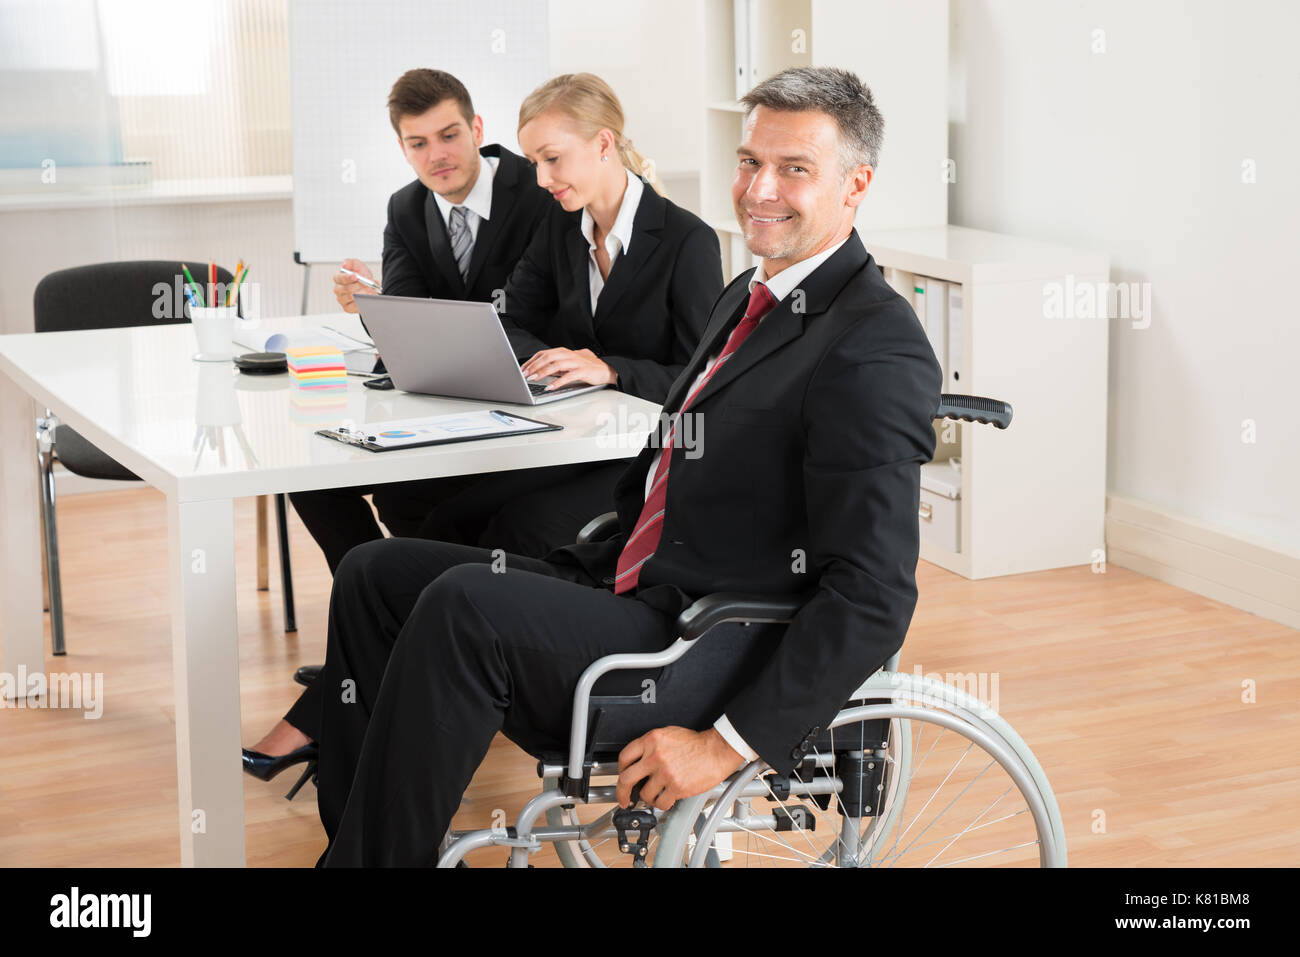 wheelchair jobs posture chair support disabled young job stock photos and